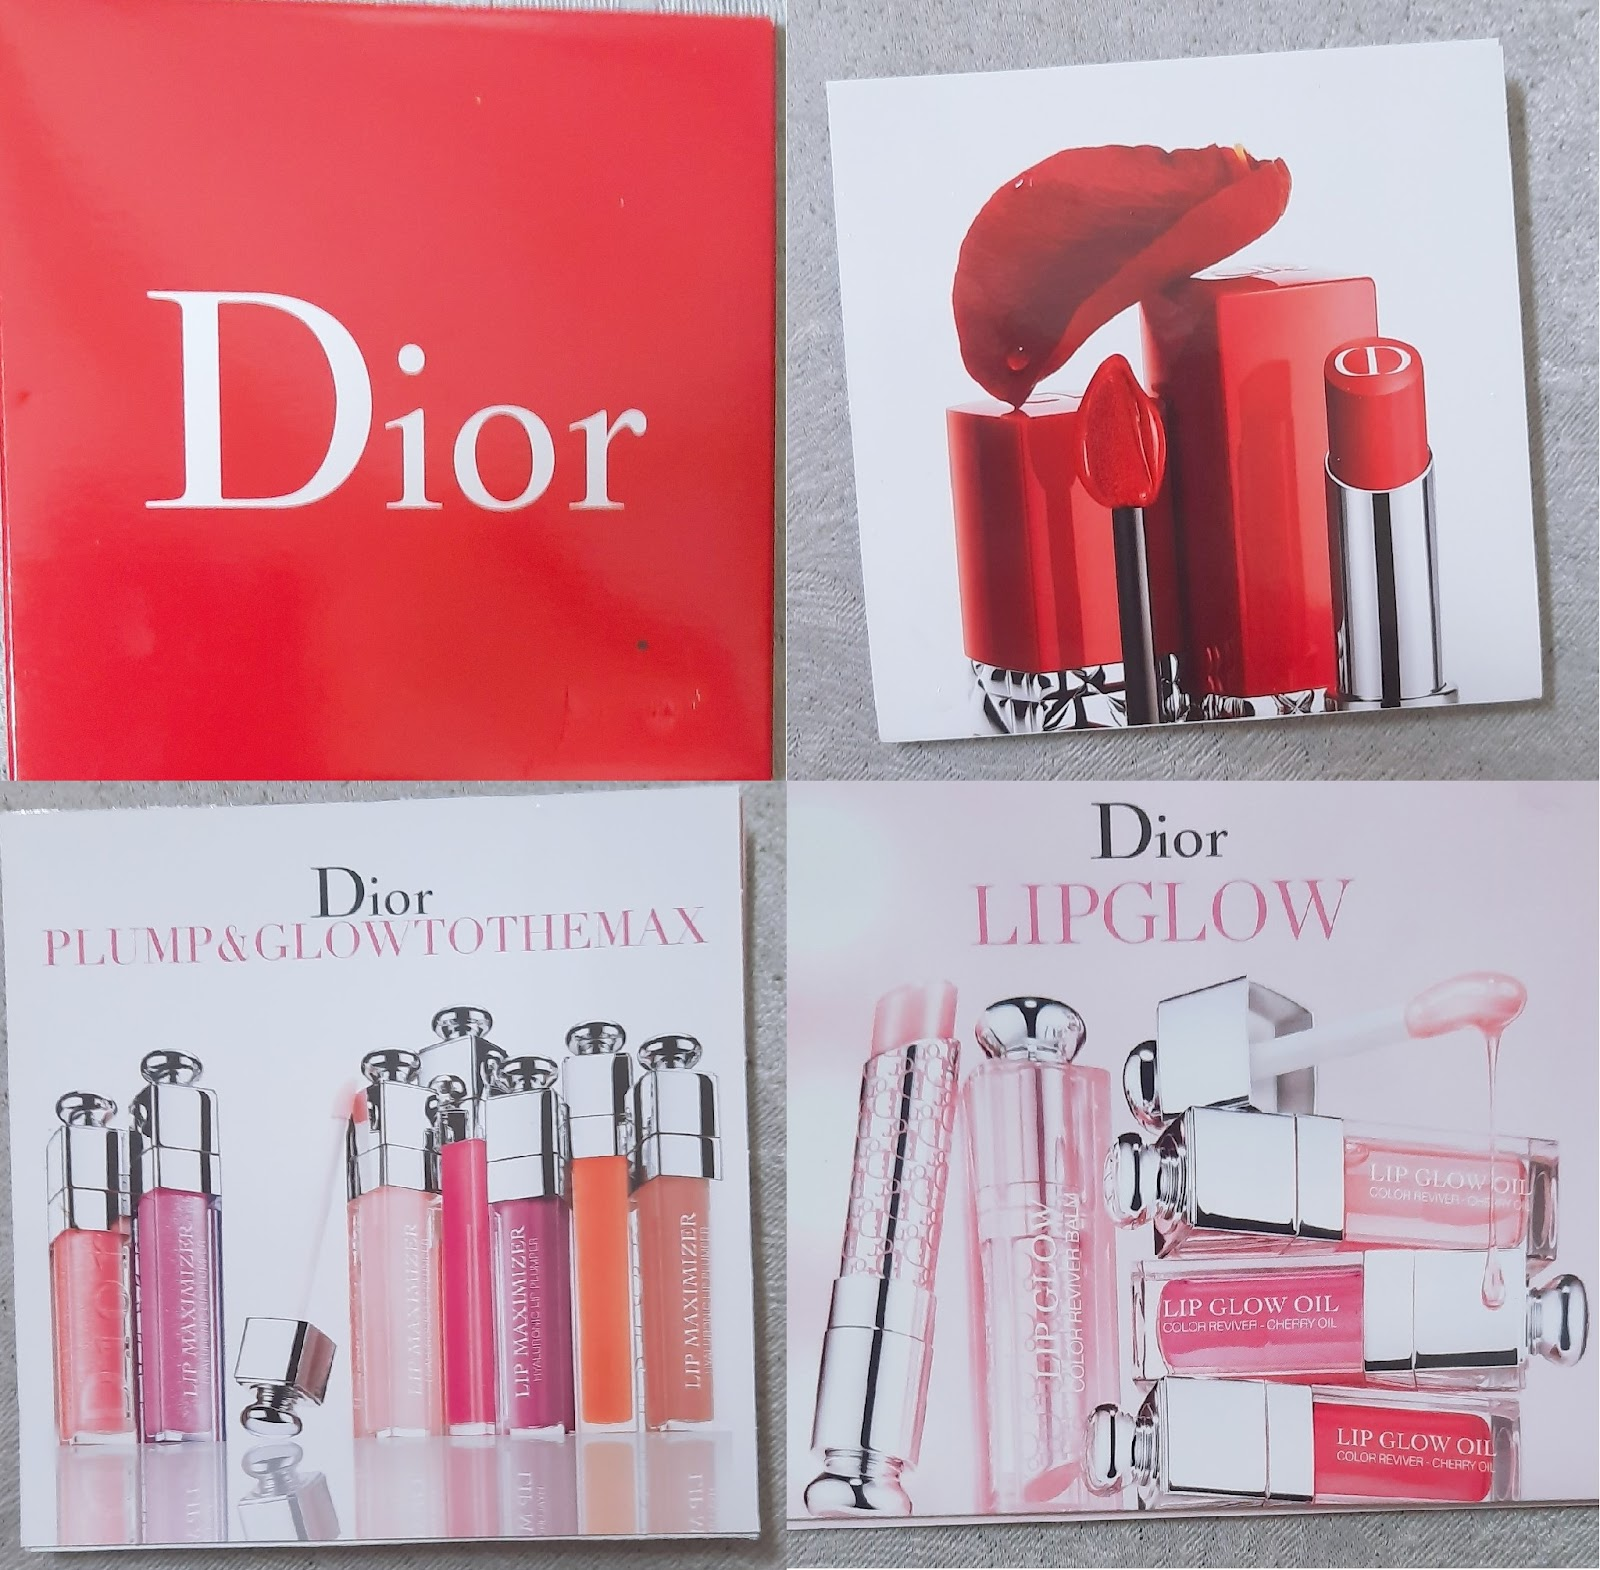 Dior 唇色實測: Lip glow, Lip glow oil, Lip maximizer, Ultra care, Ultra care liq ...